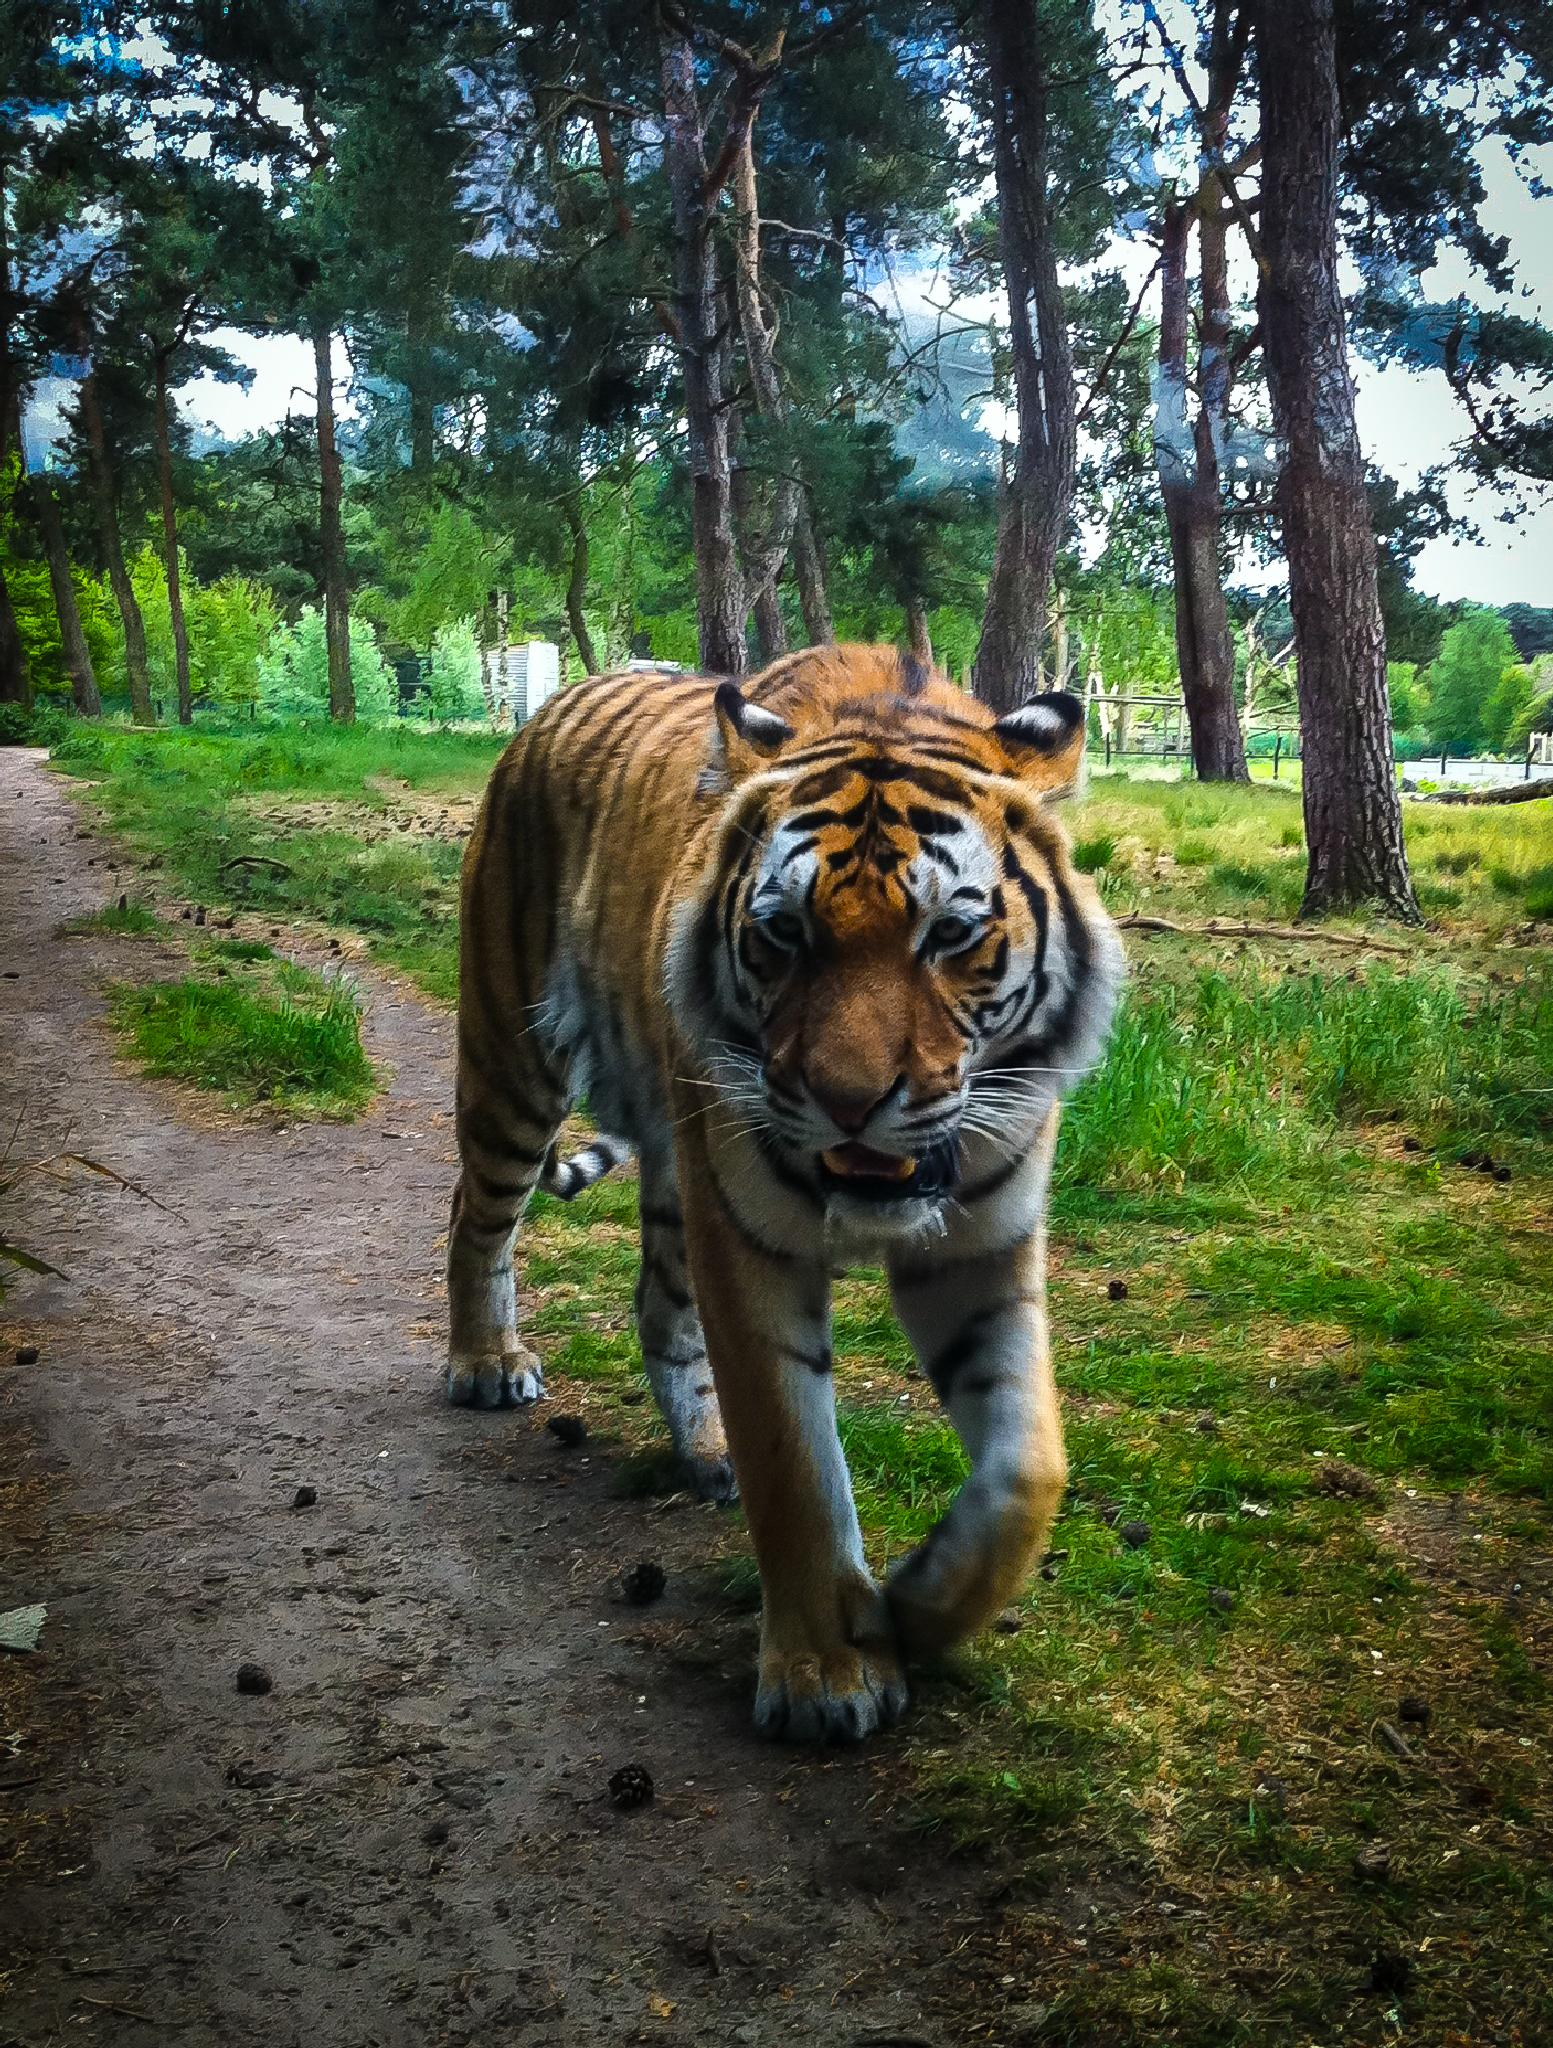 Tiger by Sybo Lans